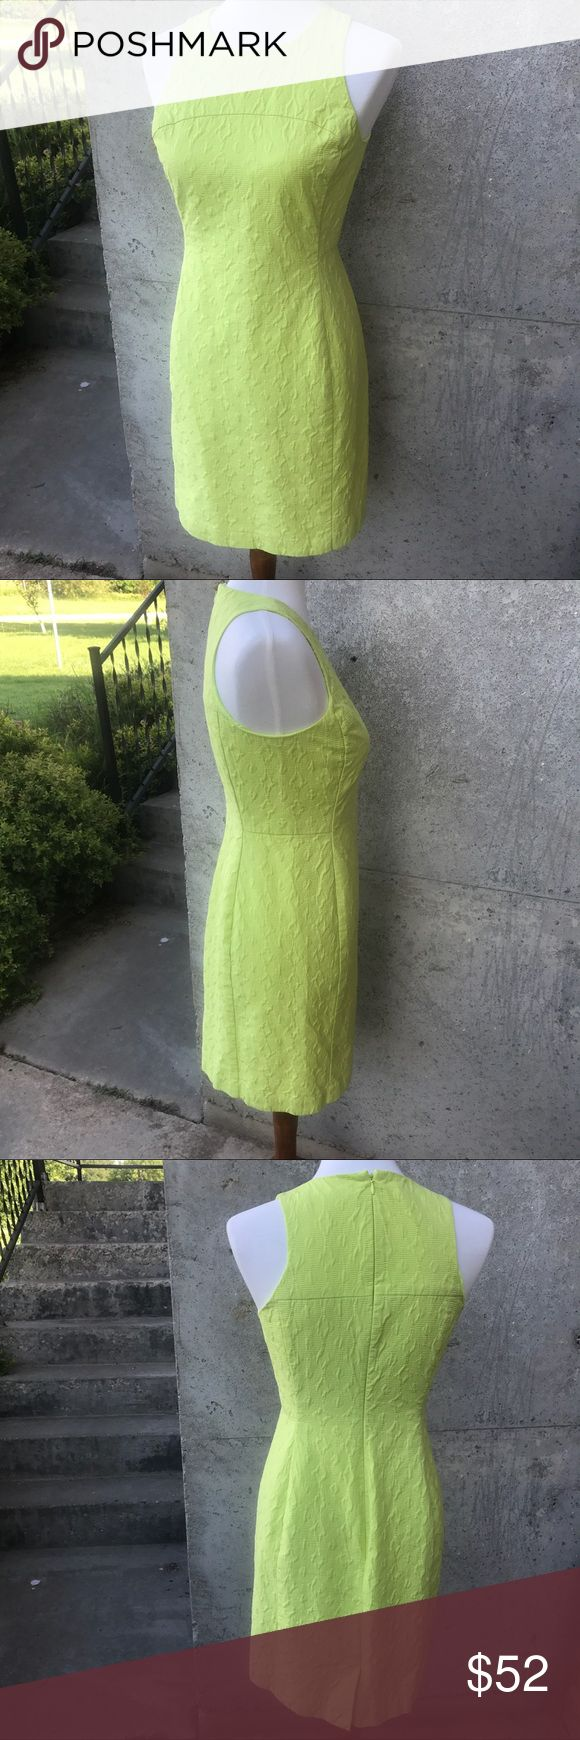 "Banana Republic Milly dress! Banana Republic lime green dress from the Milly collection! 14"" waist, 16"" chest, 34"" length, all measurements taken lying flat. Dress is lined with lime green. Excellent condition, smoke free, pet friendly🐶😂 home. Banana Republic Dresses Midi"